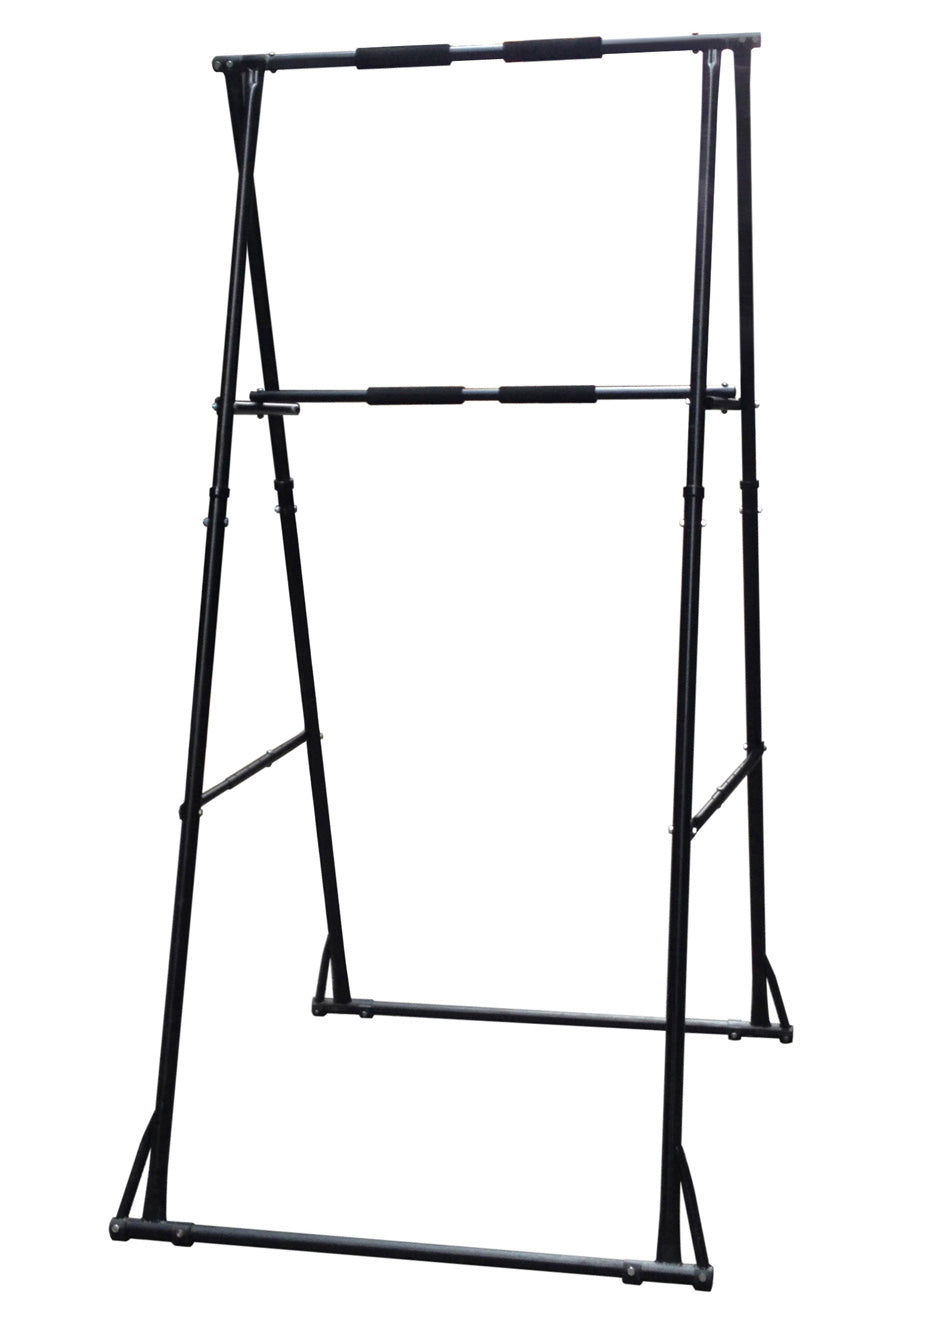 MODEL KT1.HT: DOUBLE-TIERED FOLDING PULL UP BAR FOR USERS FROM 39.3 INCHES – 70.8 INCHES TALL